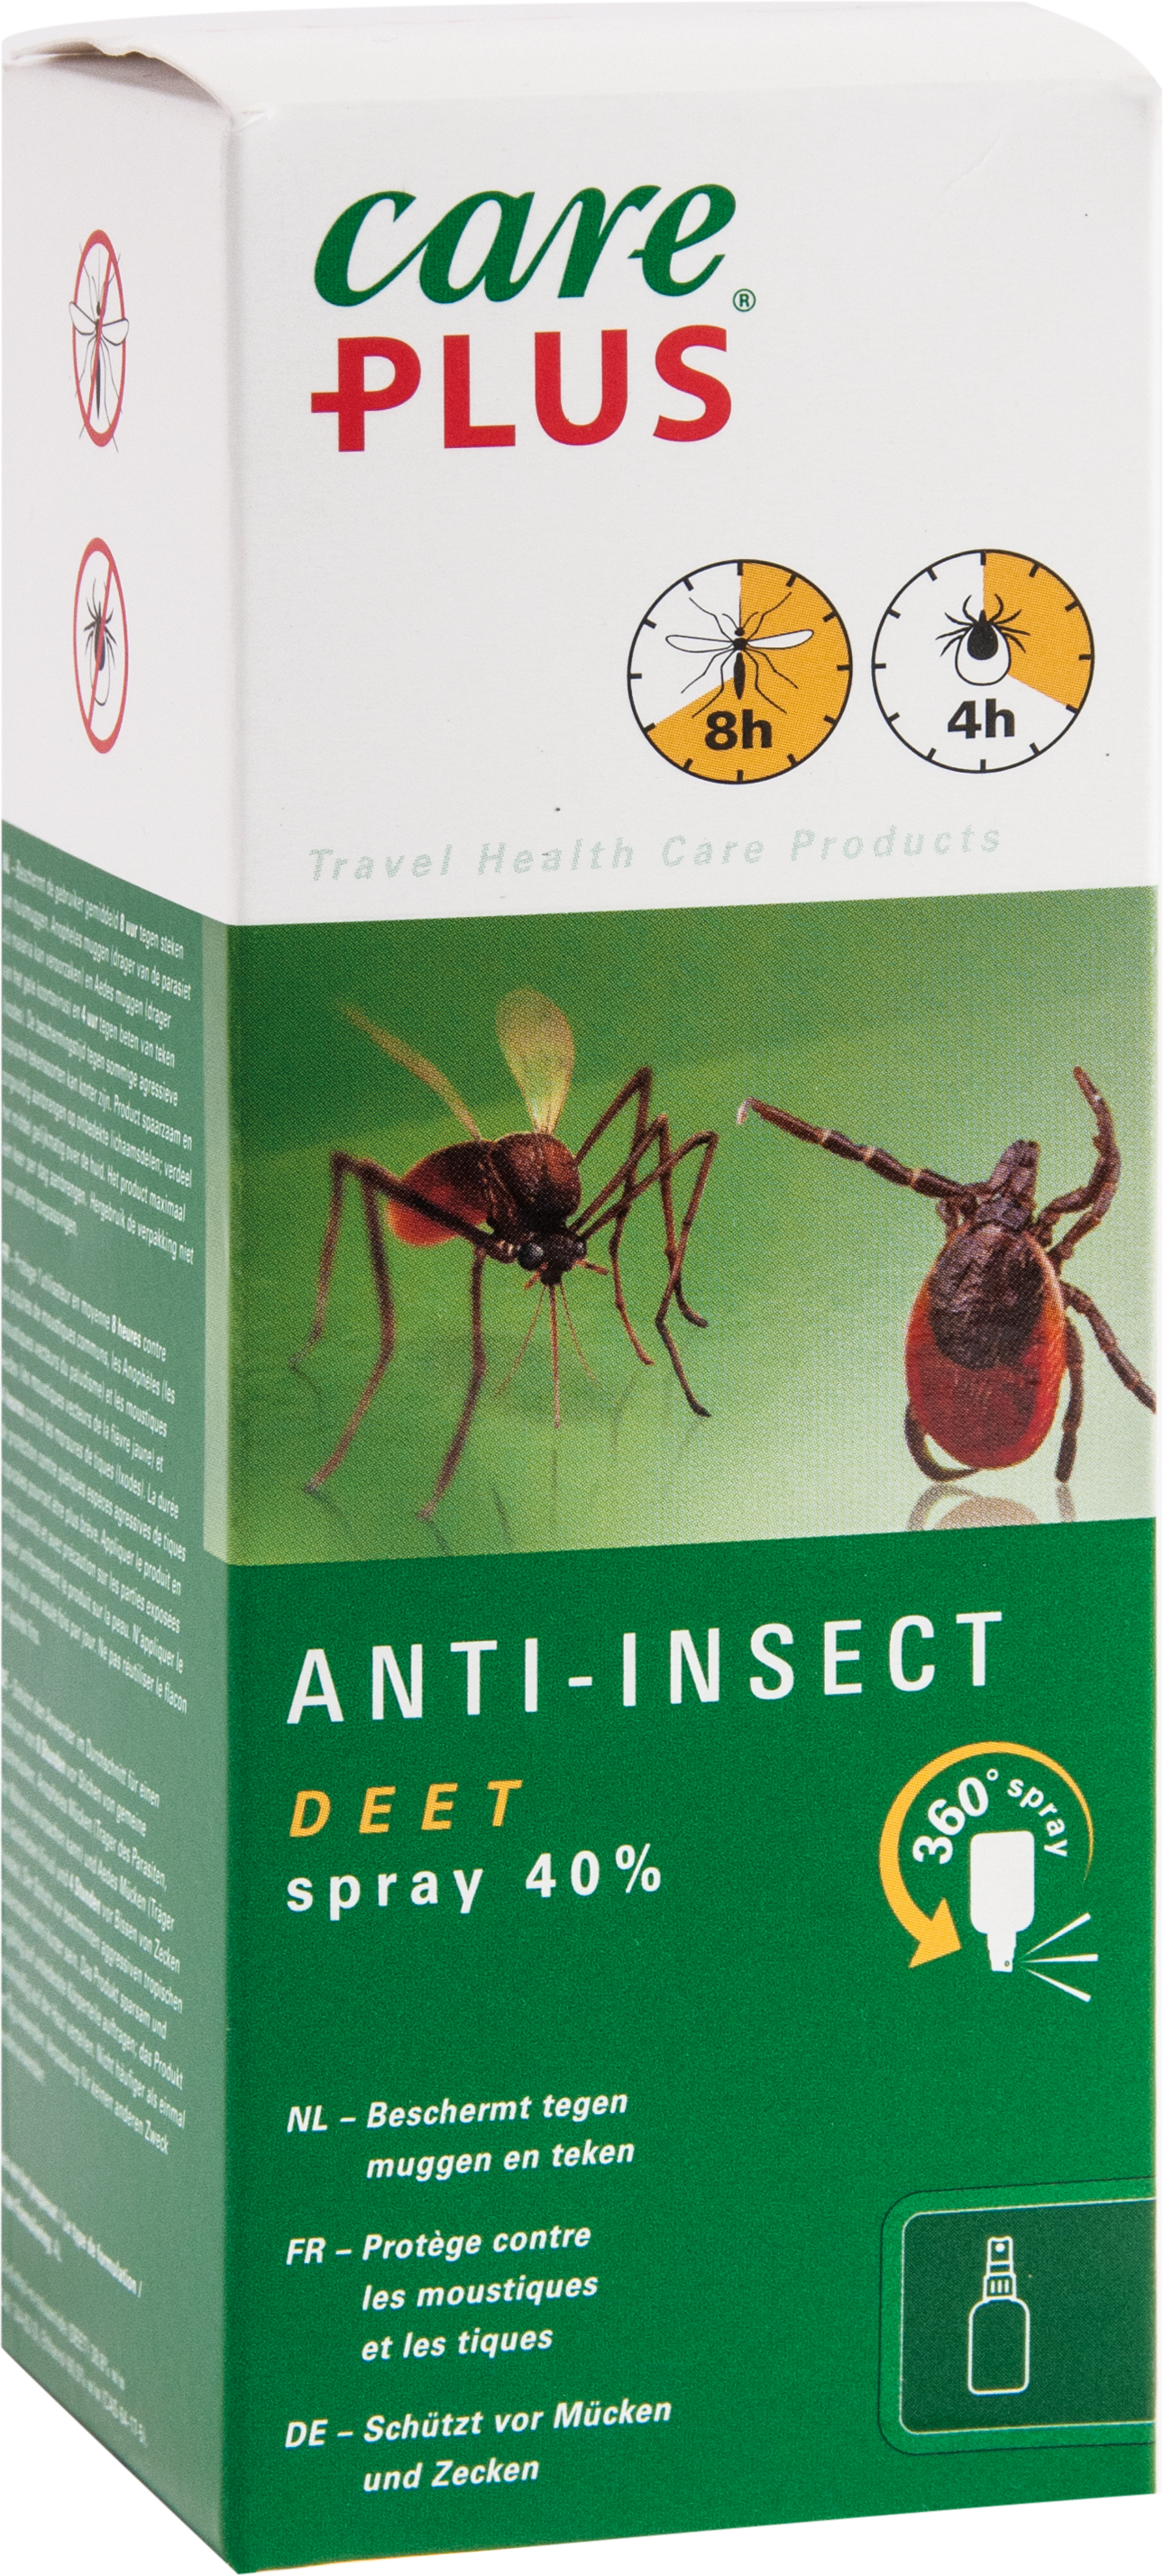 Care Plus Anti-Insect Deet 40% XXL